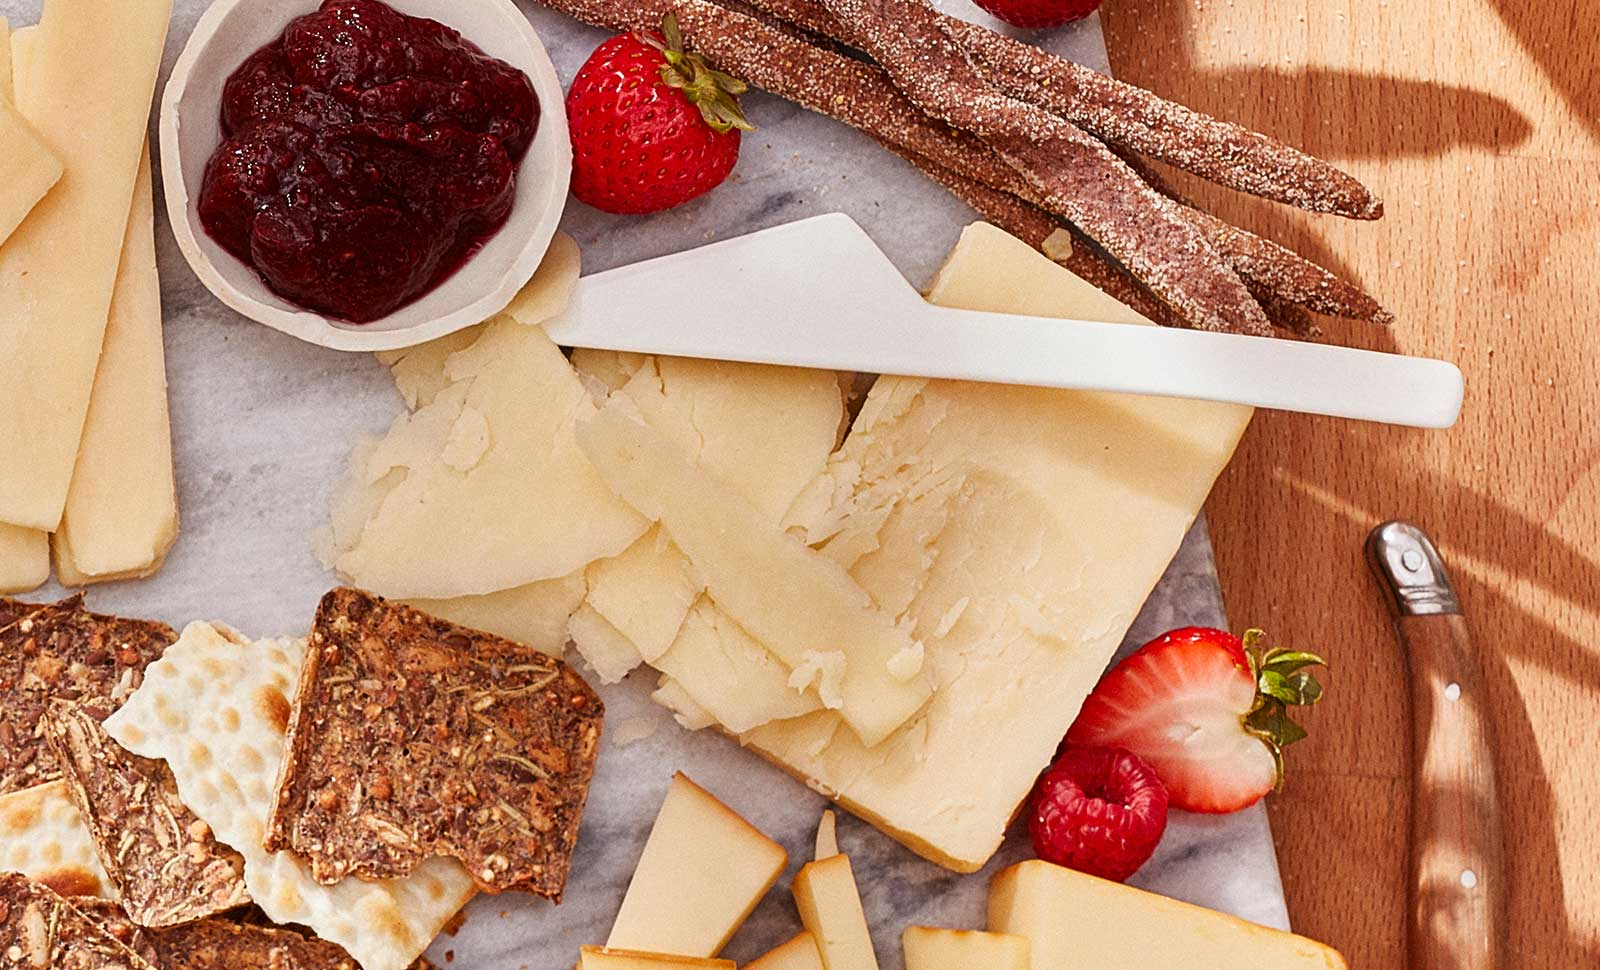 Two-year naturally aged cheddar cut with a knife served with multigrain crackers and strawberries.